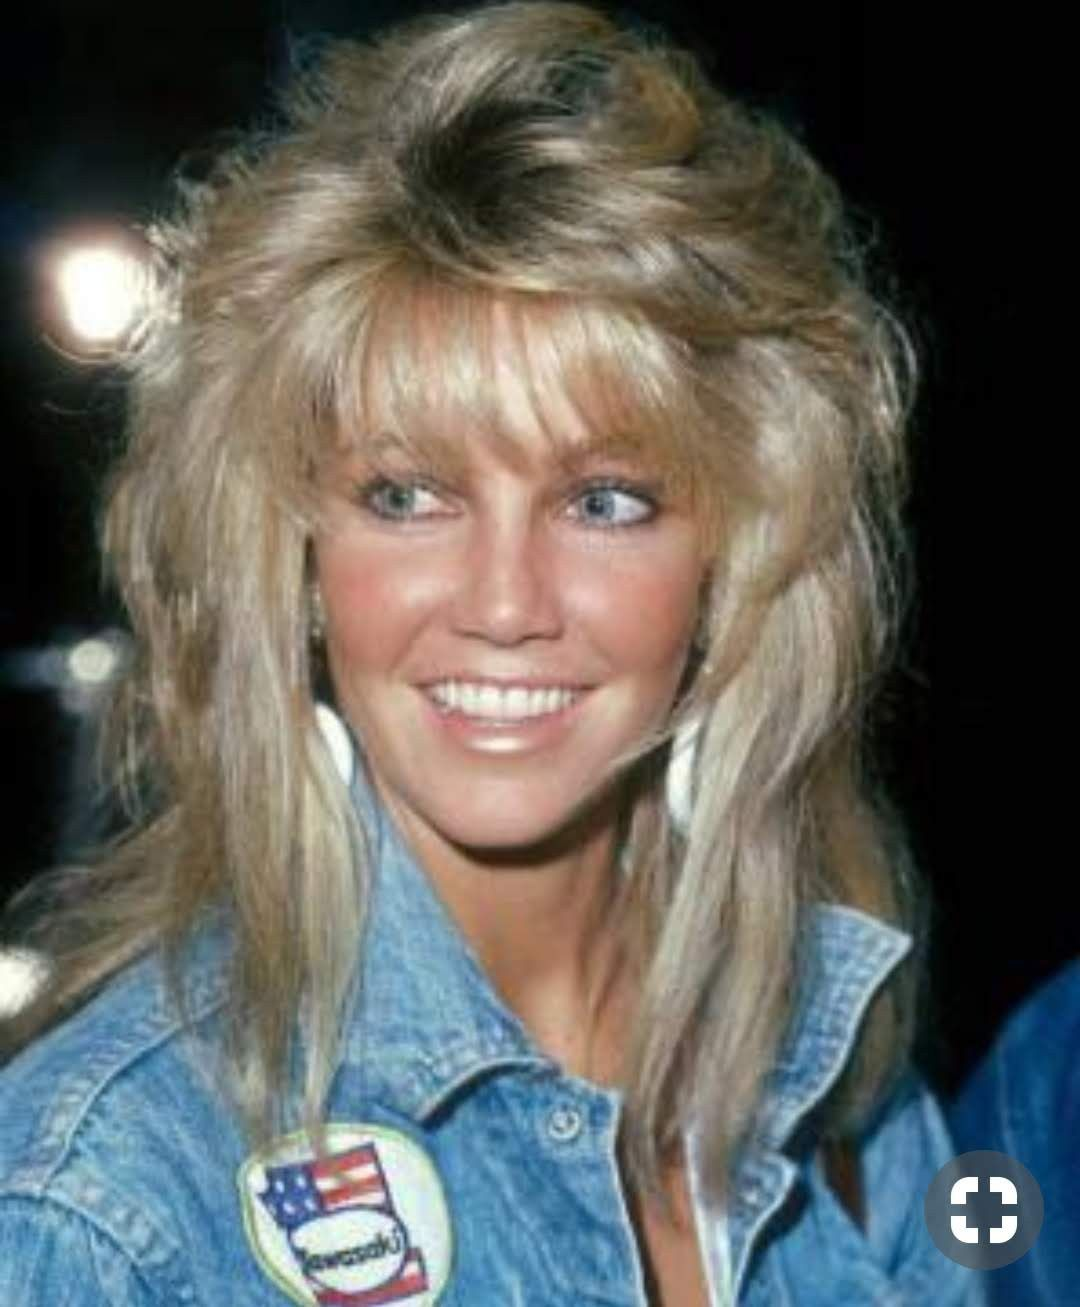 Pin by Phyllis Spaw on Hair inspiration | 80s hair, 1980s hair, Heather  locklear